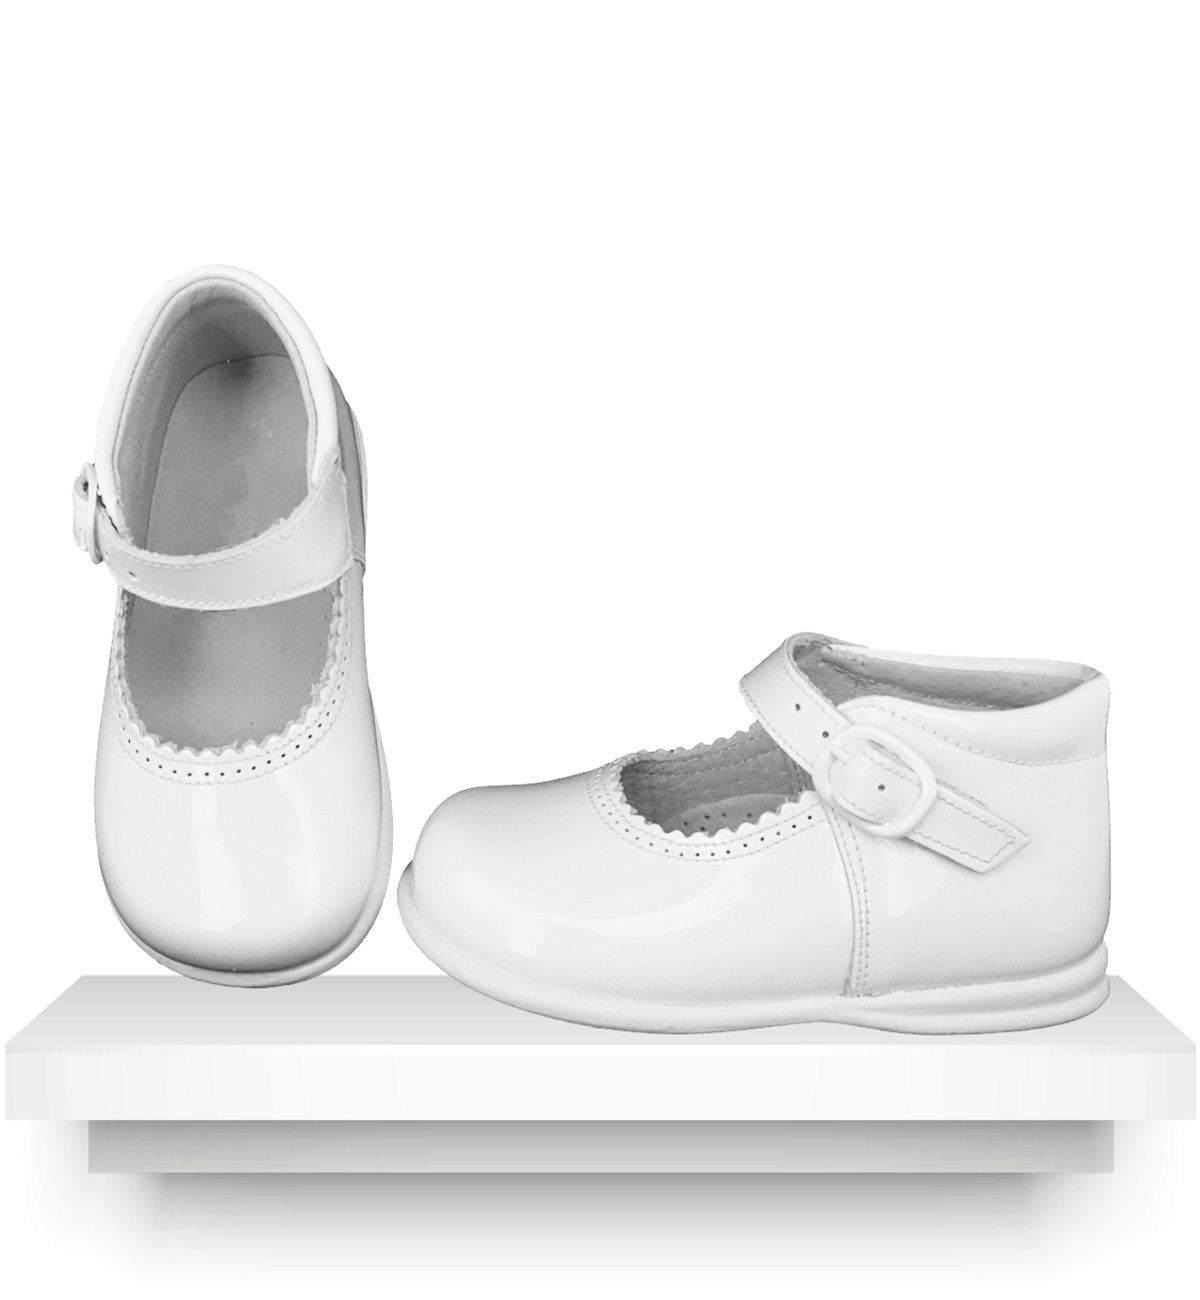 Spanish baby clothes | baby Shoes | White patent shoes |babymaC  - 1